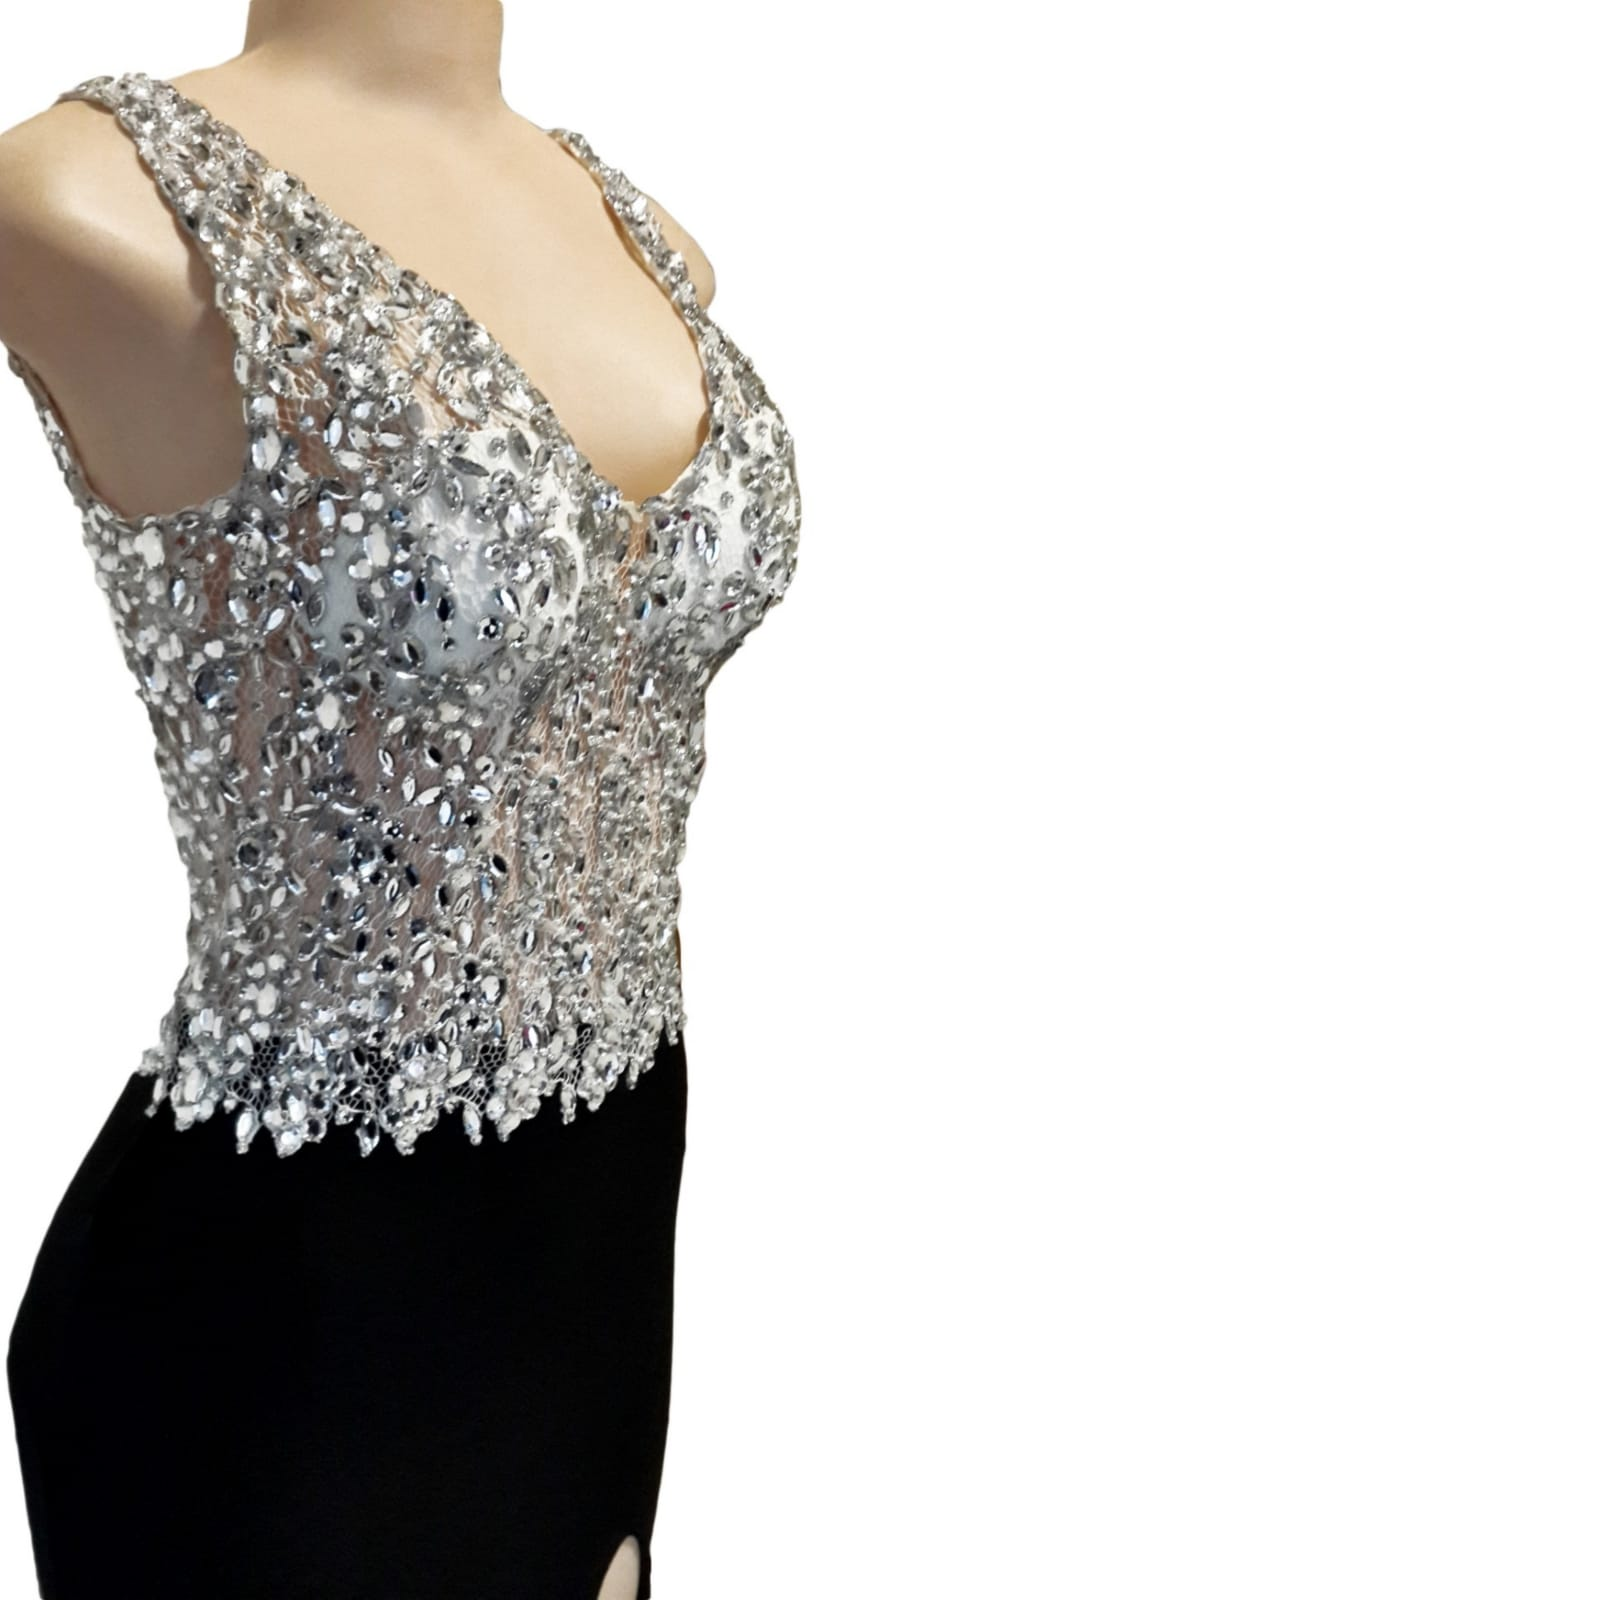 Black and silver prom dress with a slit and a train 5 black & silver prom dress with a slit and a train. Bodice with a sweetheart neckline and a low open back. With detailed silver beadwork through out the bodice